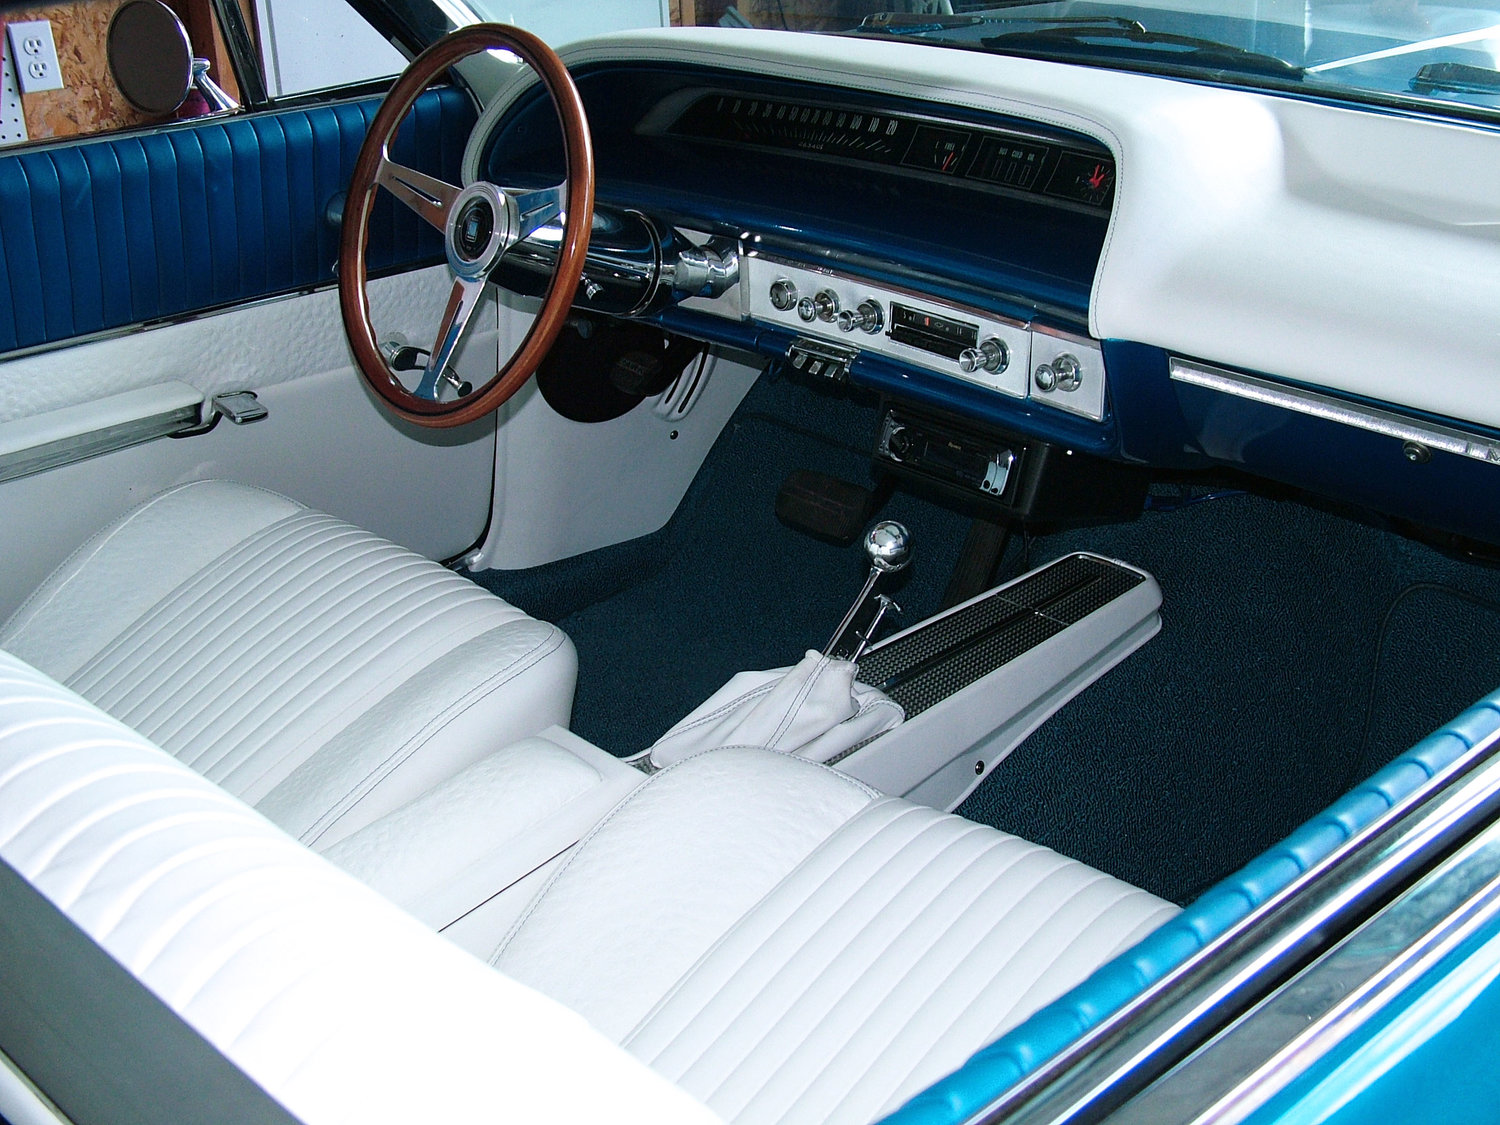 Full custom interior Impala with white leather bucket seats, blue and white door panels,